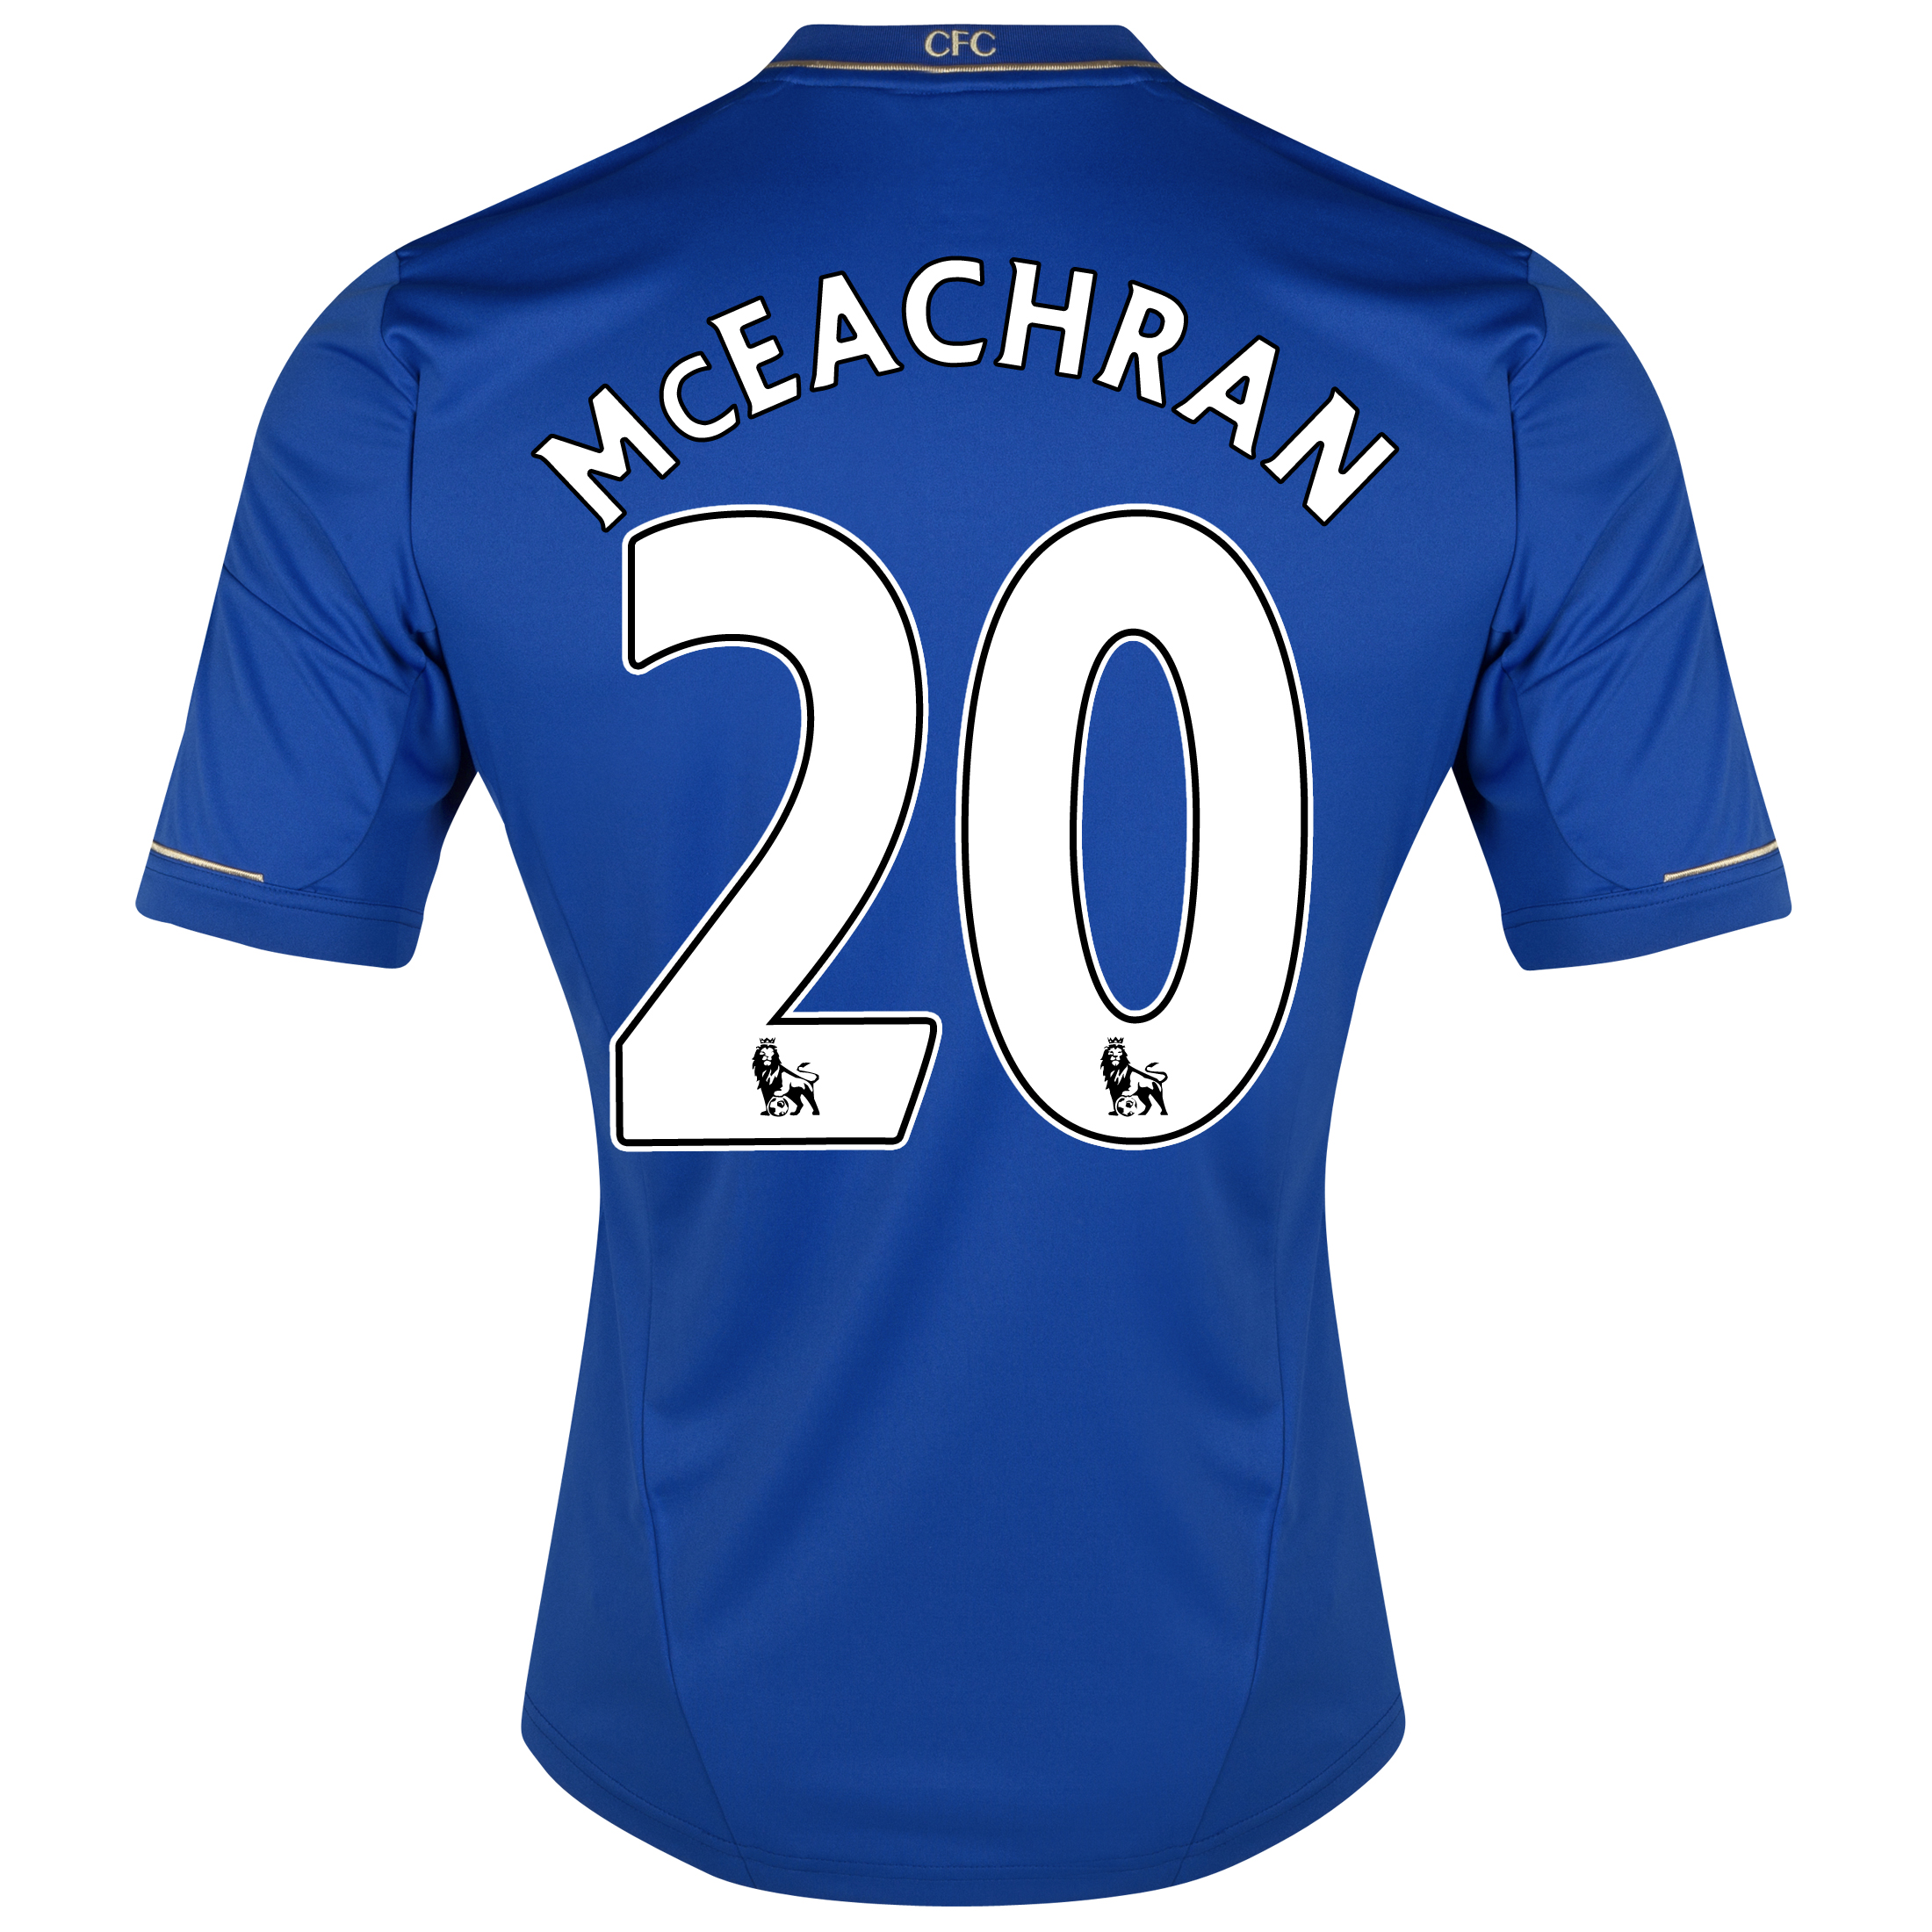 Chelsea Home Shirt 2012/13 - Youths with McEachran 20 printing